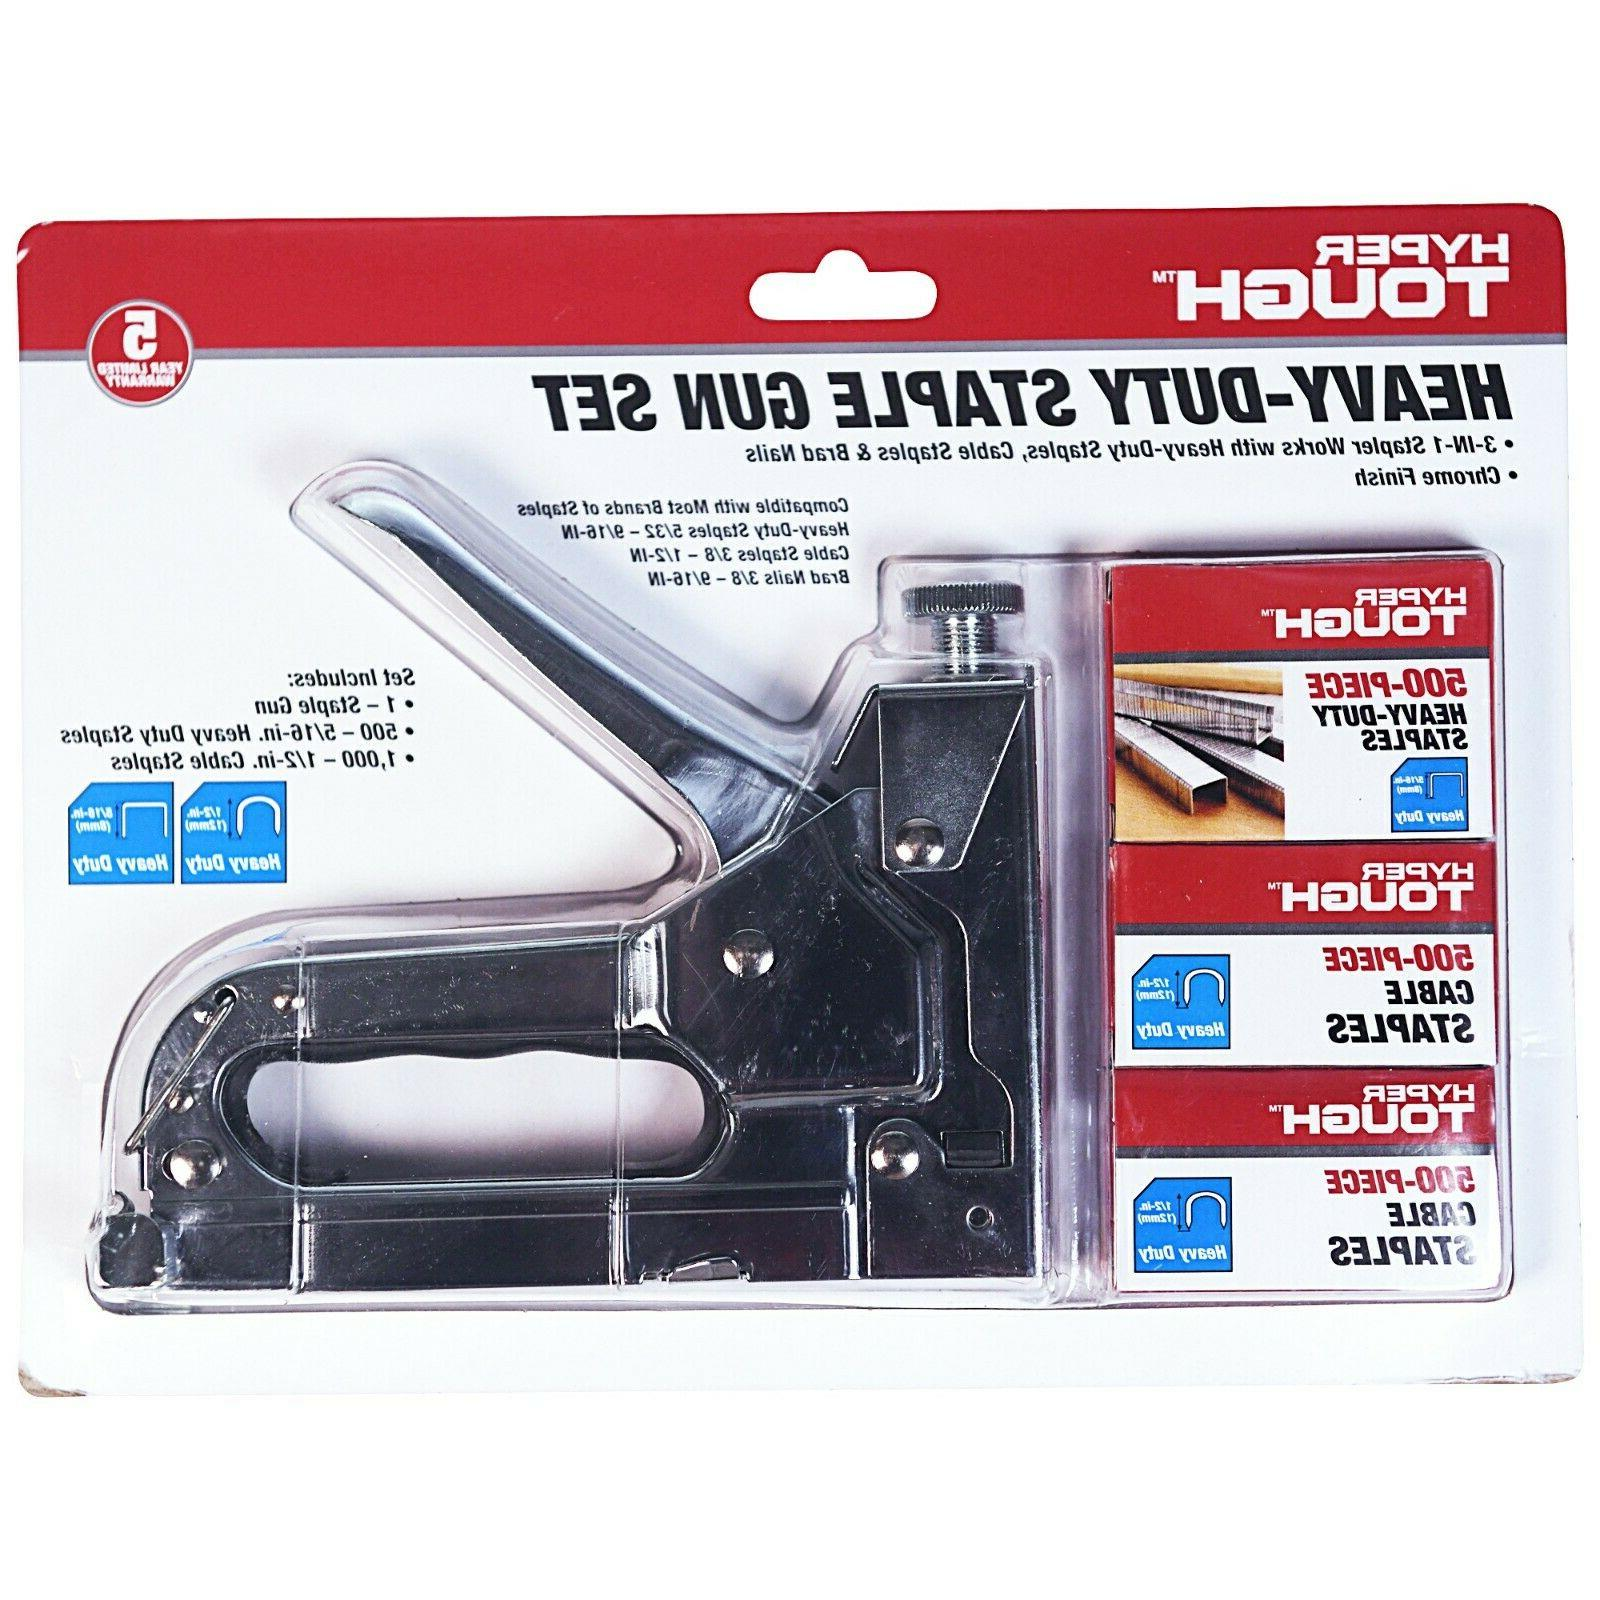 3 in 1 heavy duty staple gun